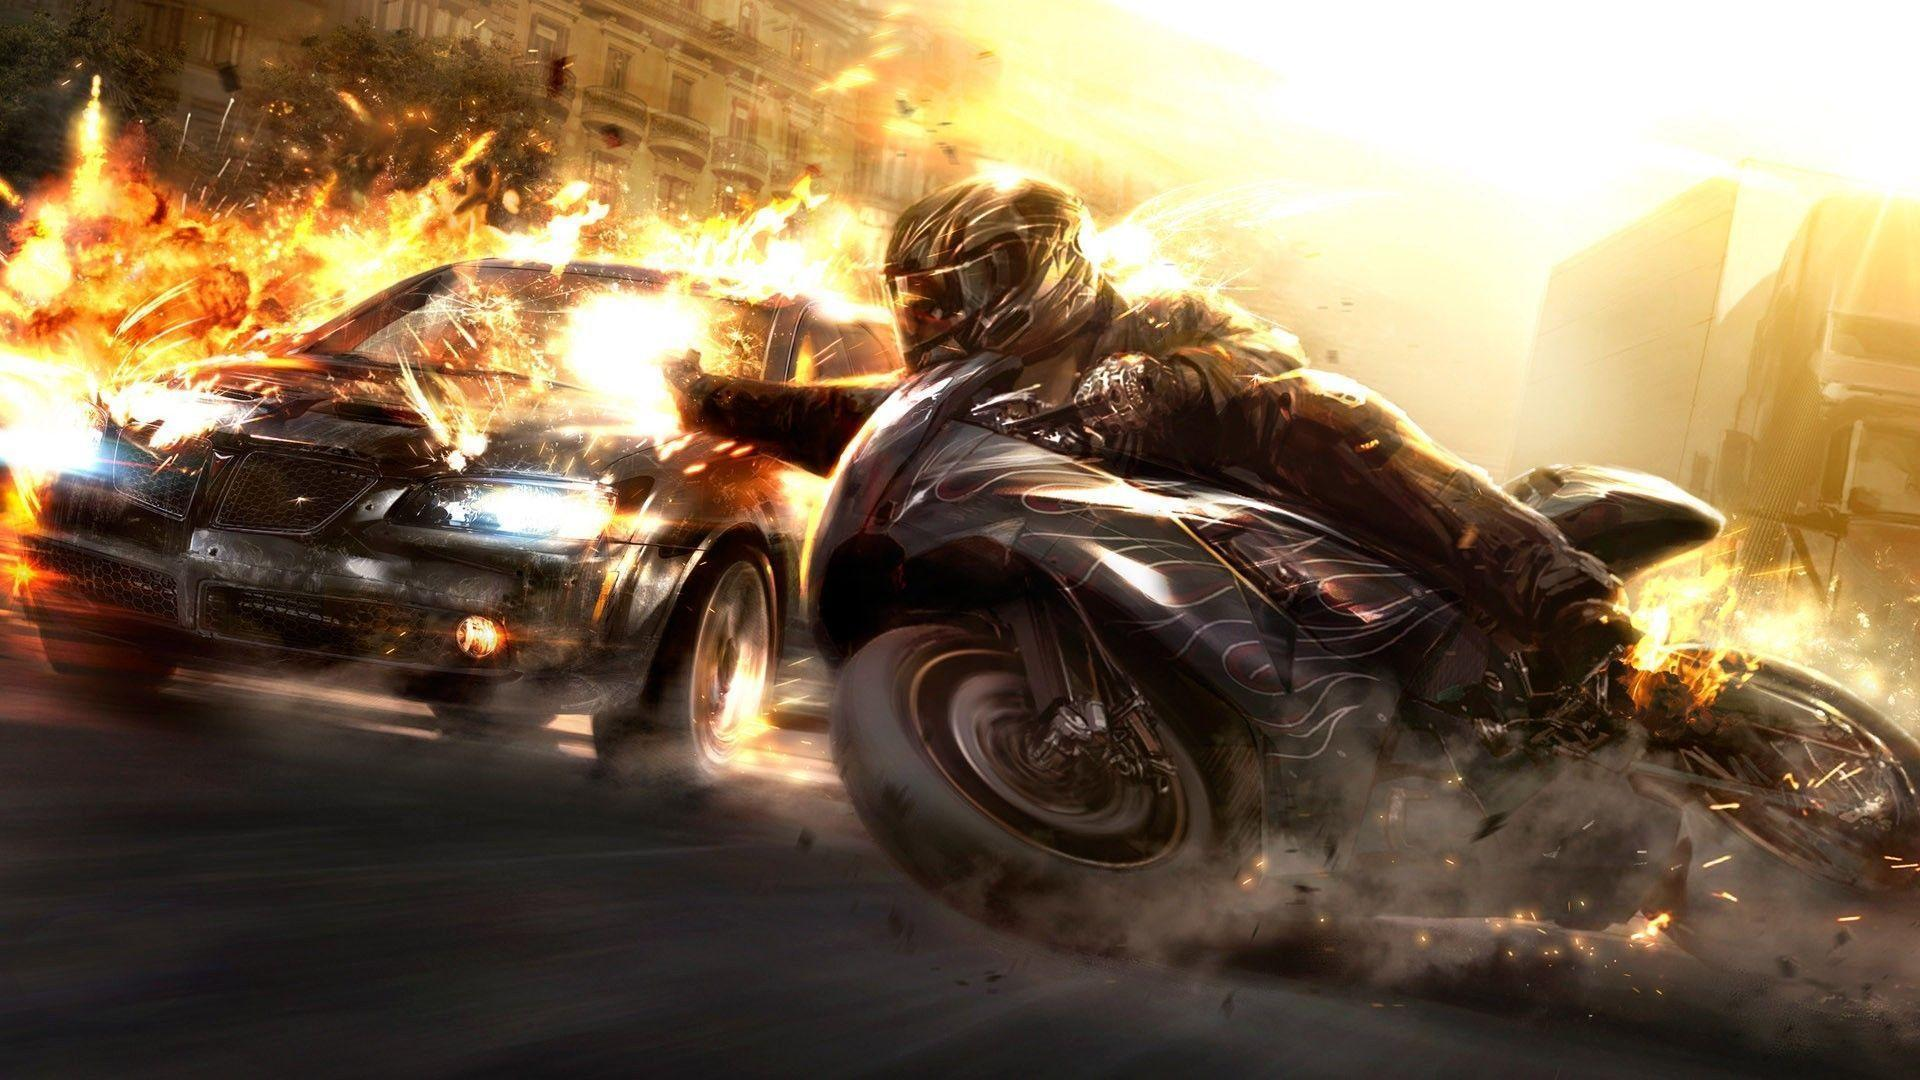 Wallpapers For > Need For Speed Wallpaper